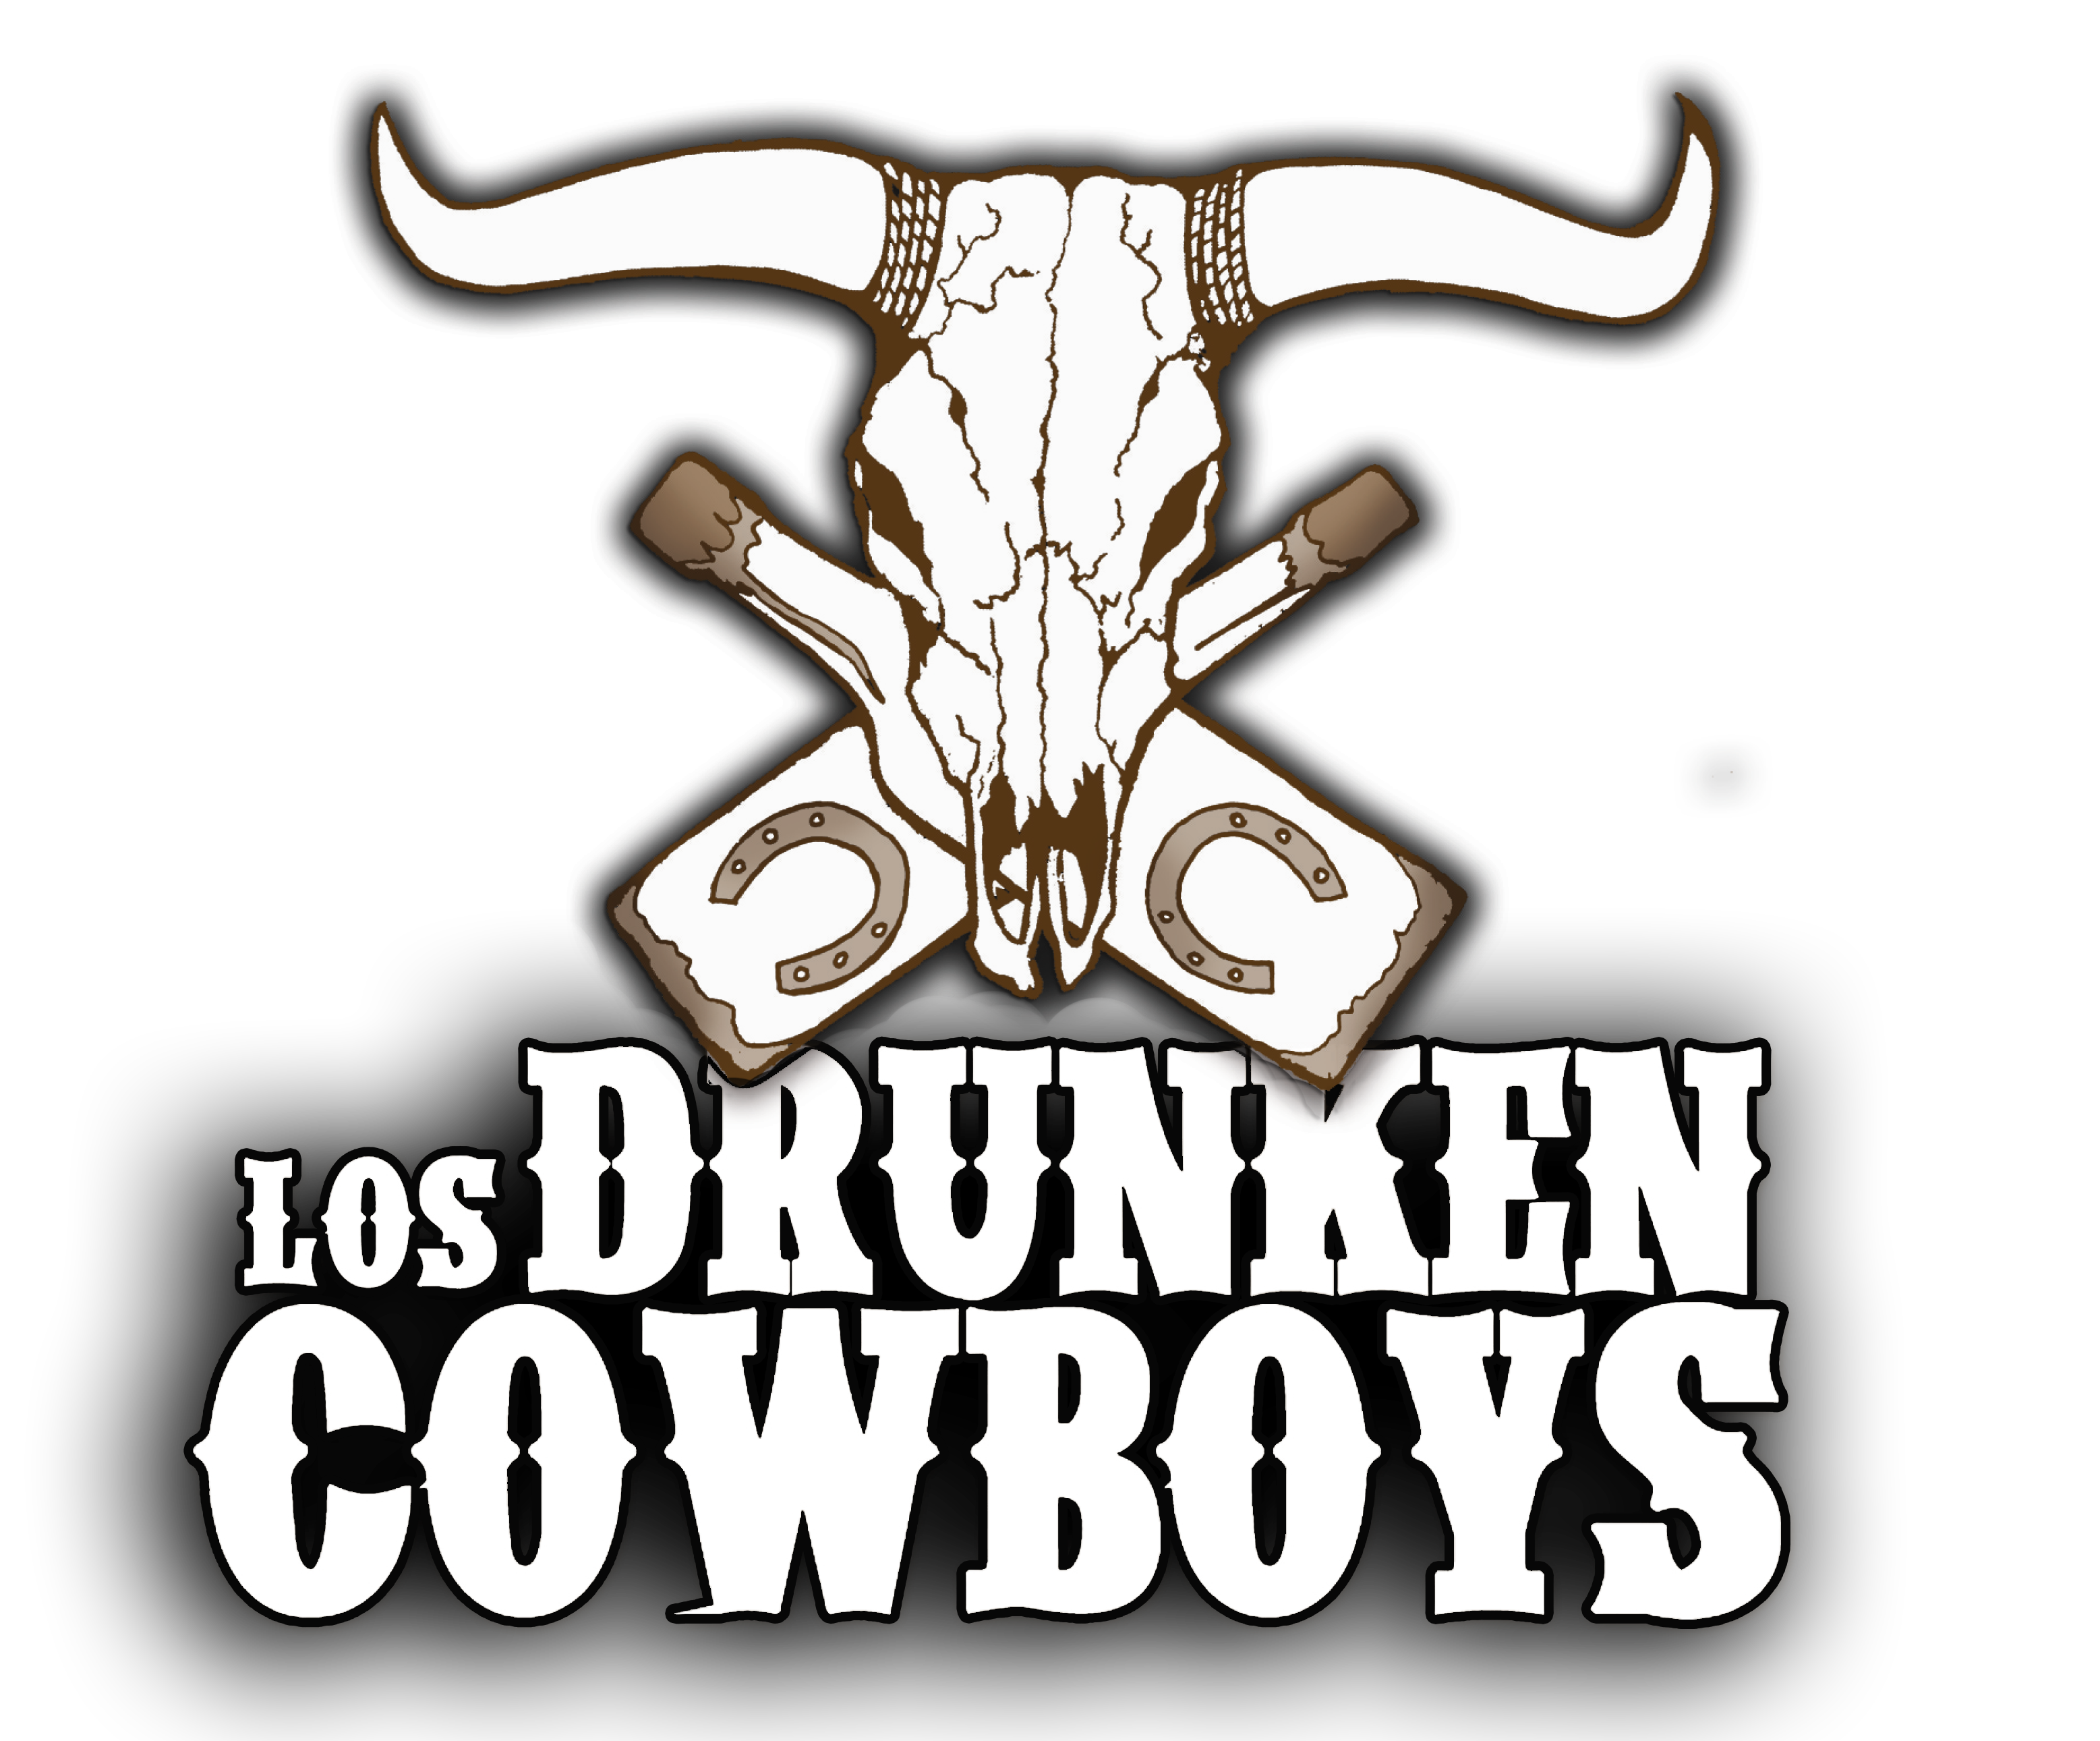 Los Drunken Cowboys